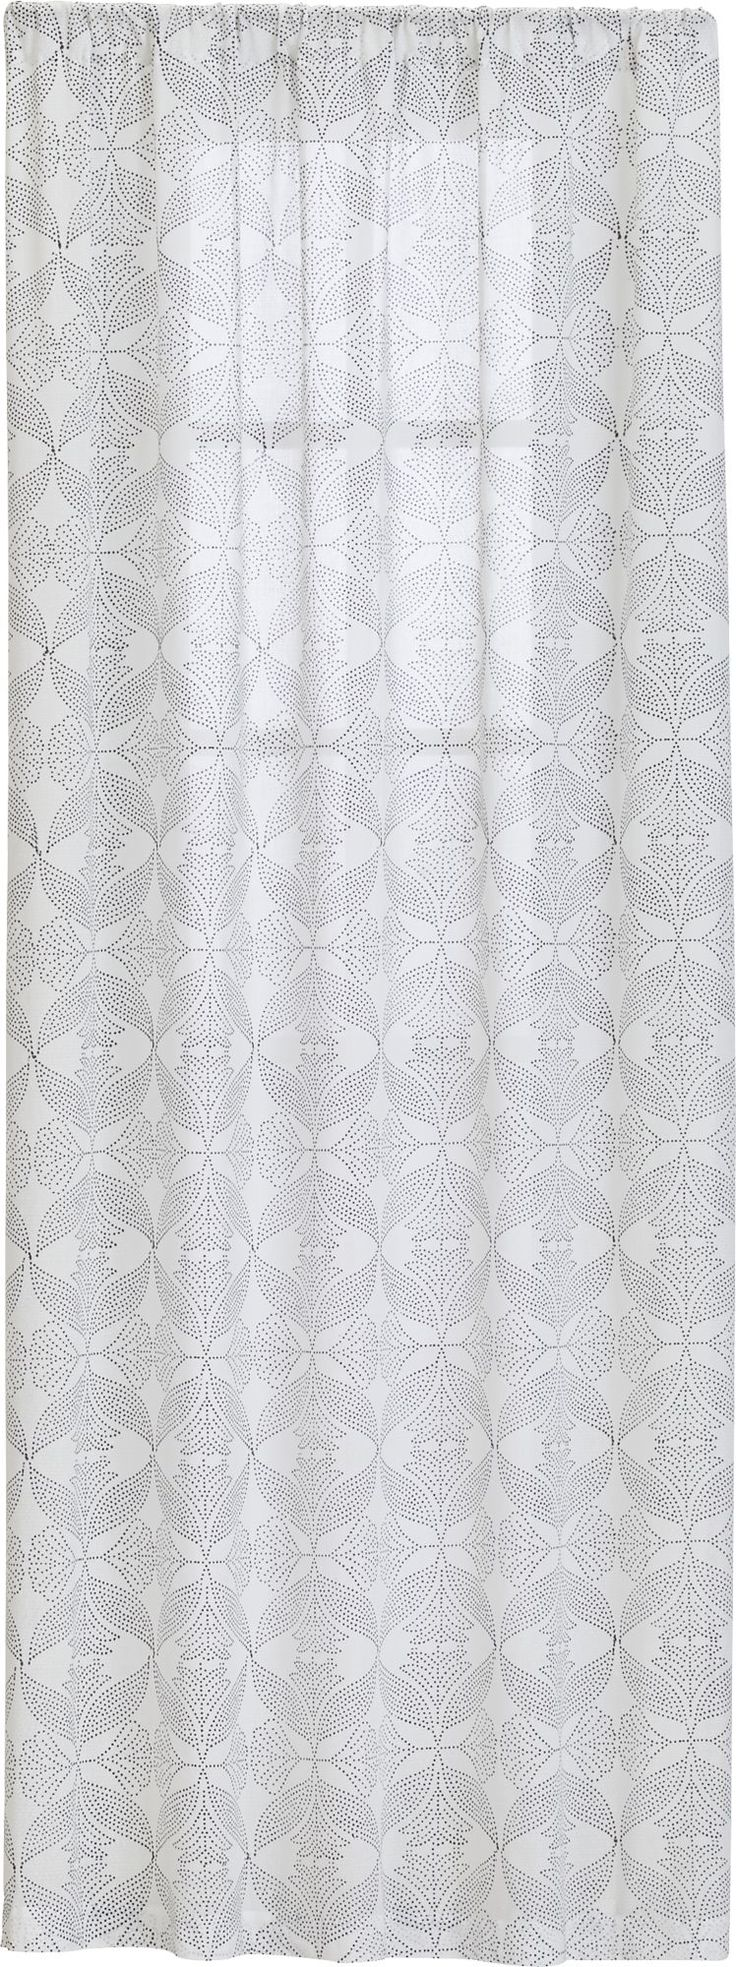 48 Best Curtains Images On Pinterest Urban Outfitters Window Dressings And Apartment Design